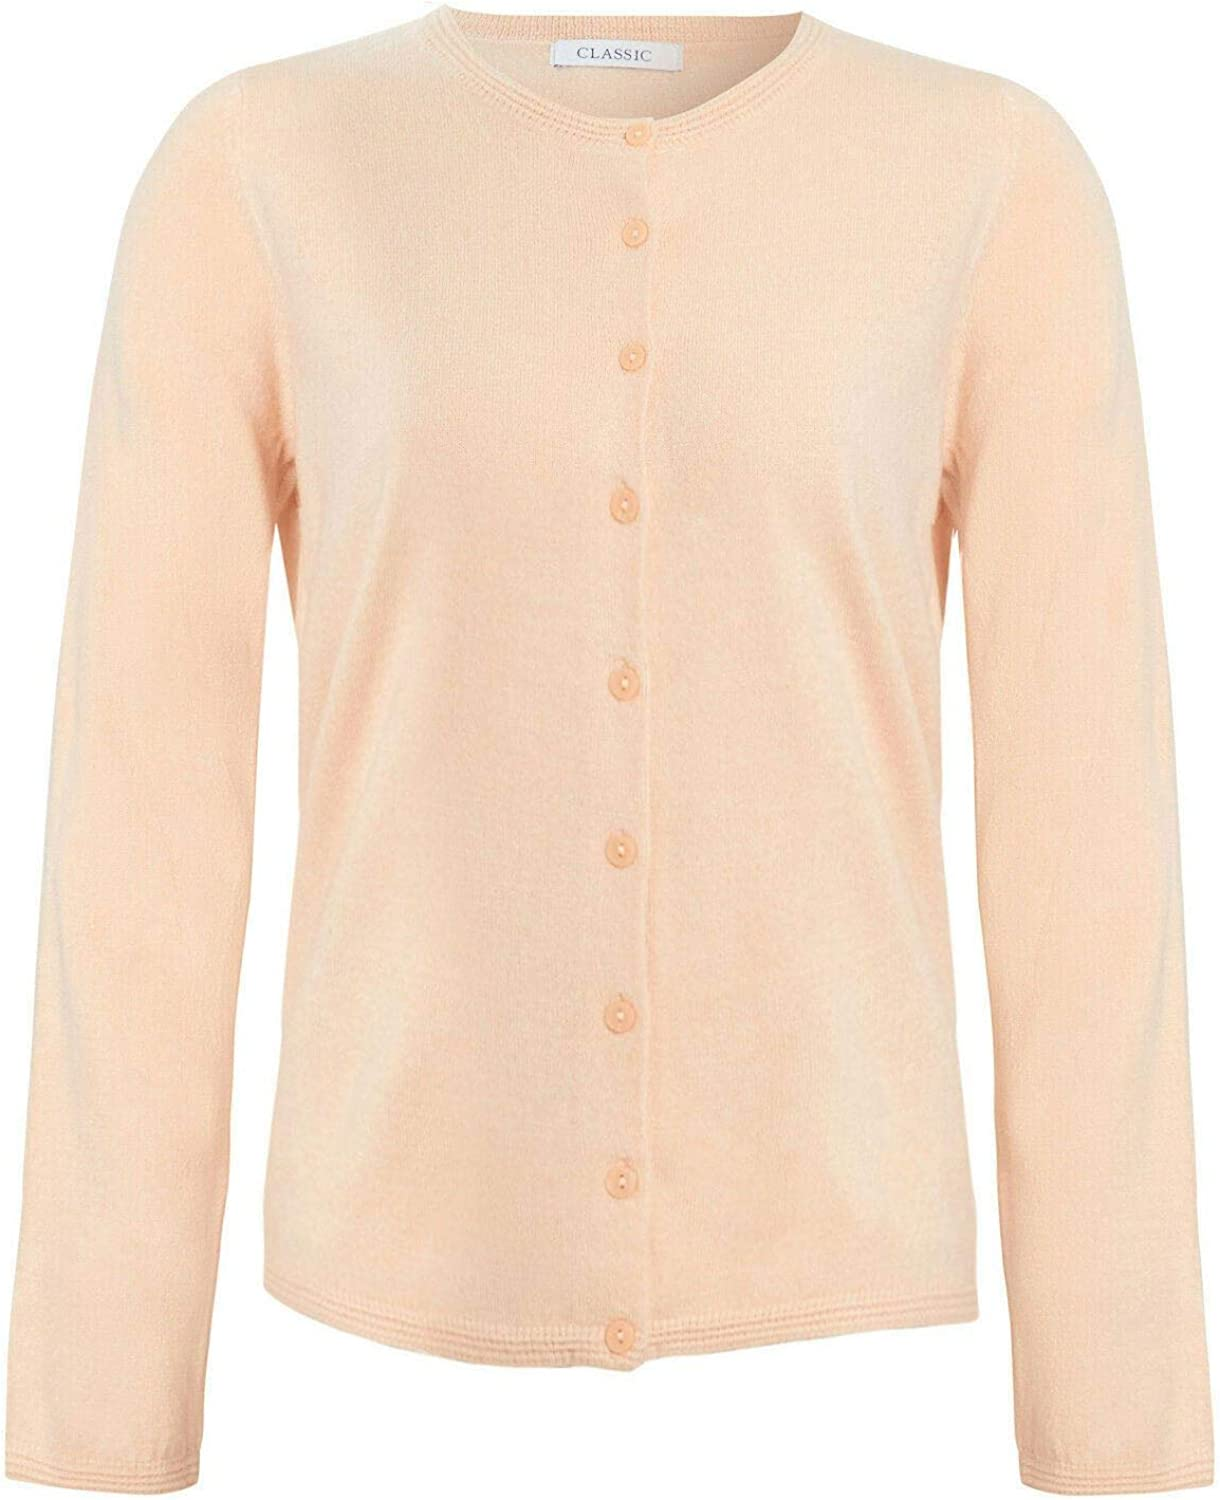 White Label M&S Womens Fine Knit Cardigan Marks & Spencer Soft Round Neck Cardie Top